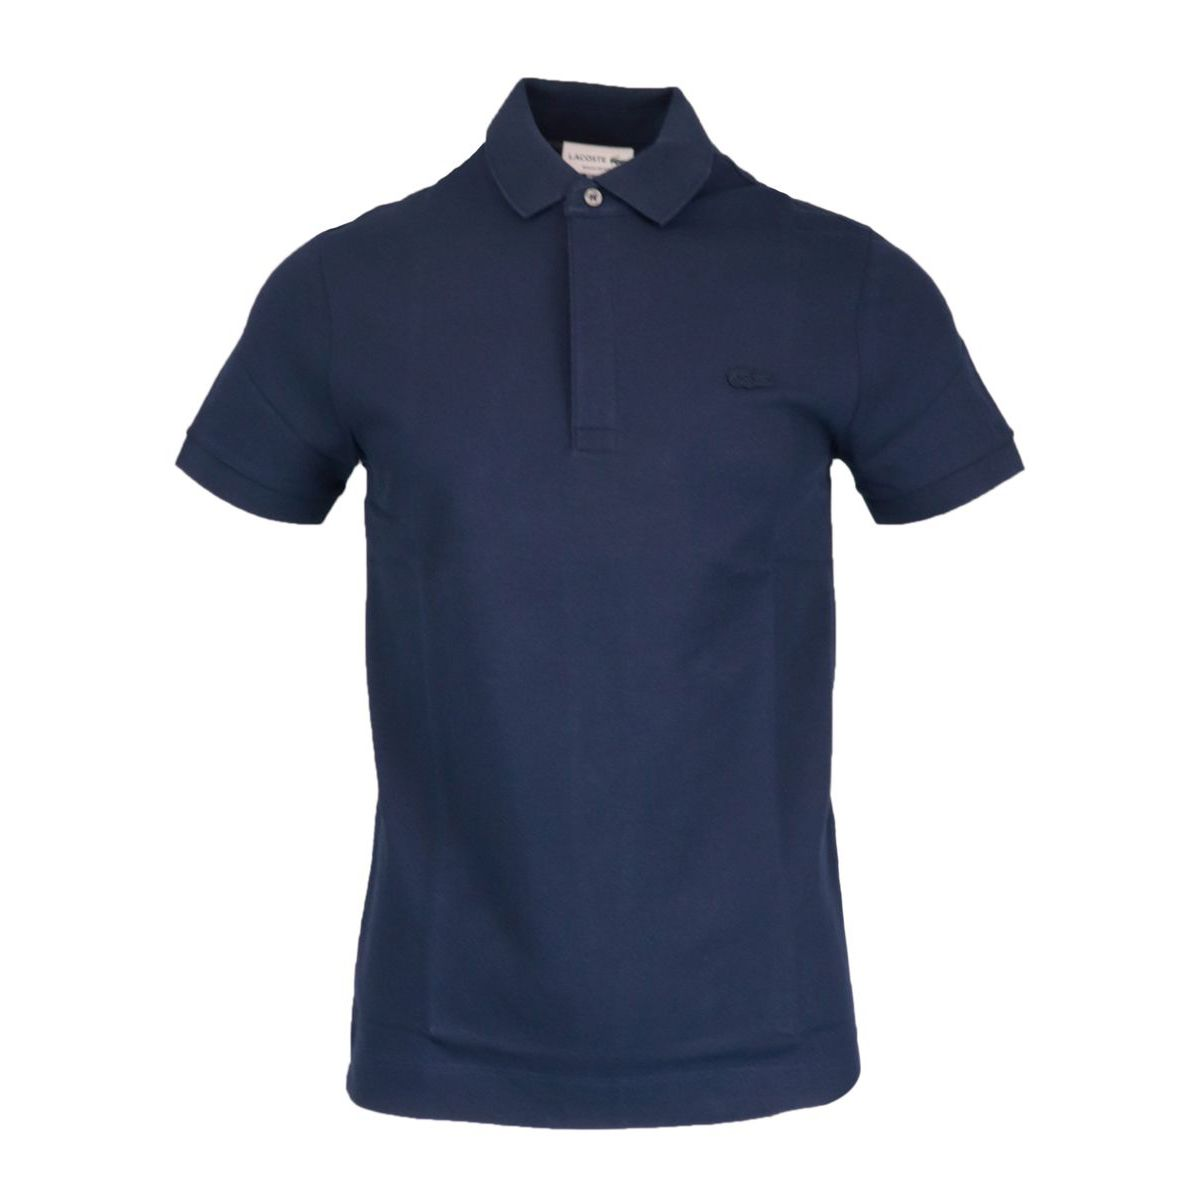 Regular Fit polo shirt in stretch cotton pique Navy Lacoste